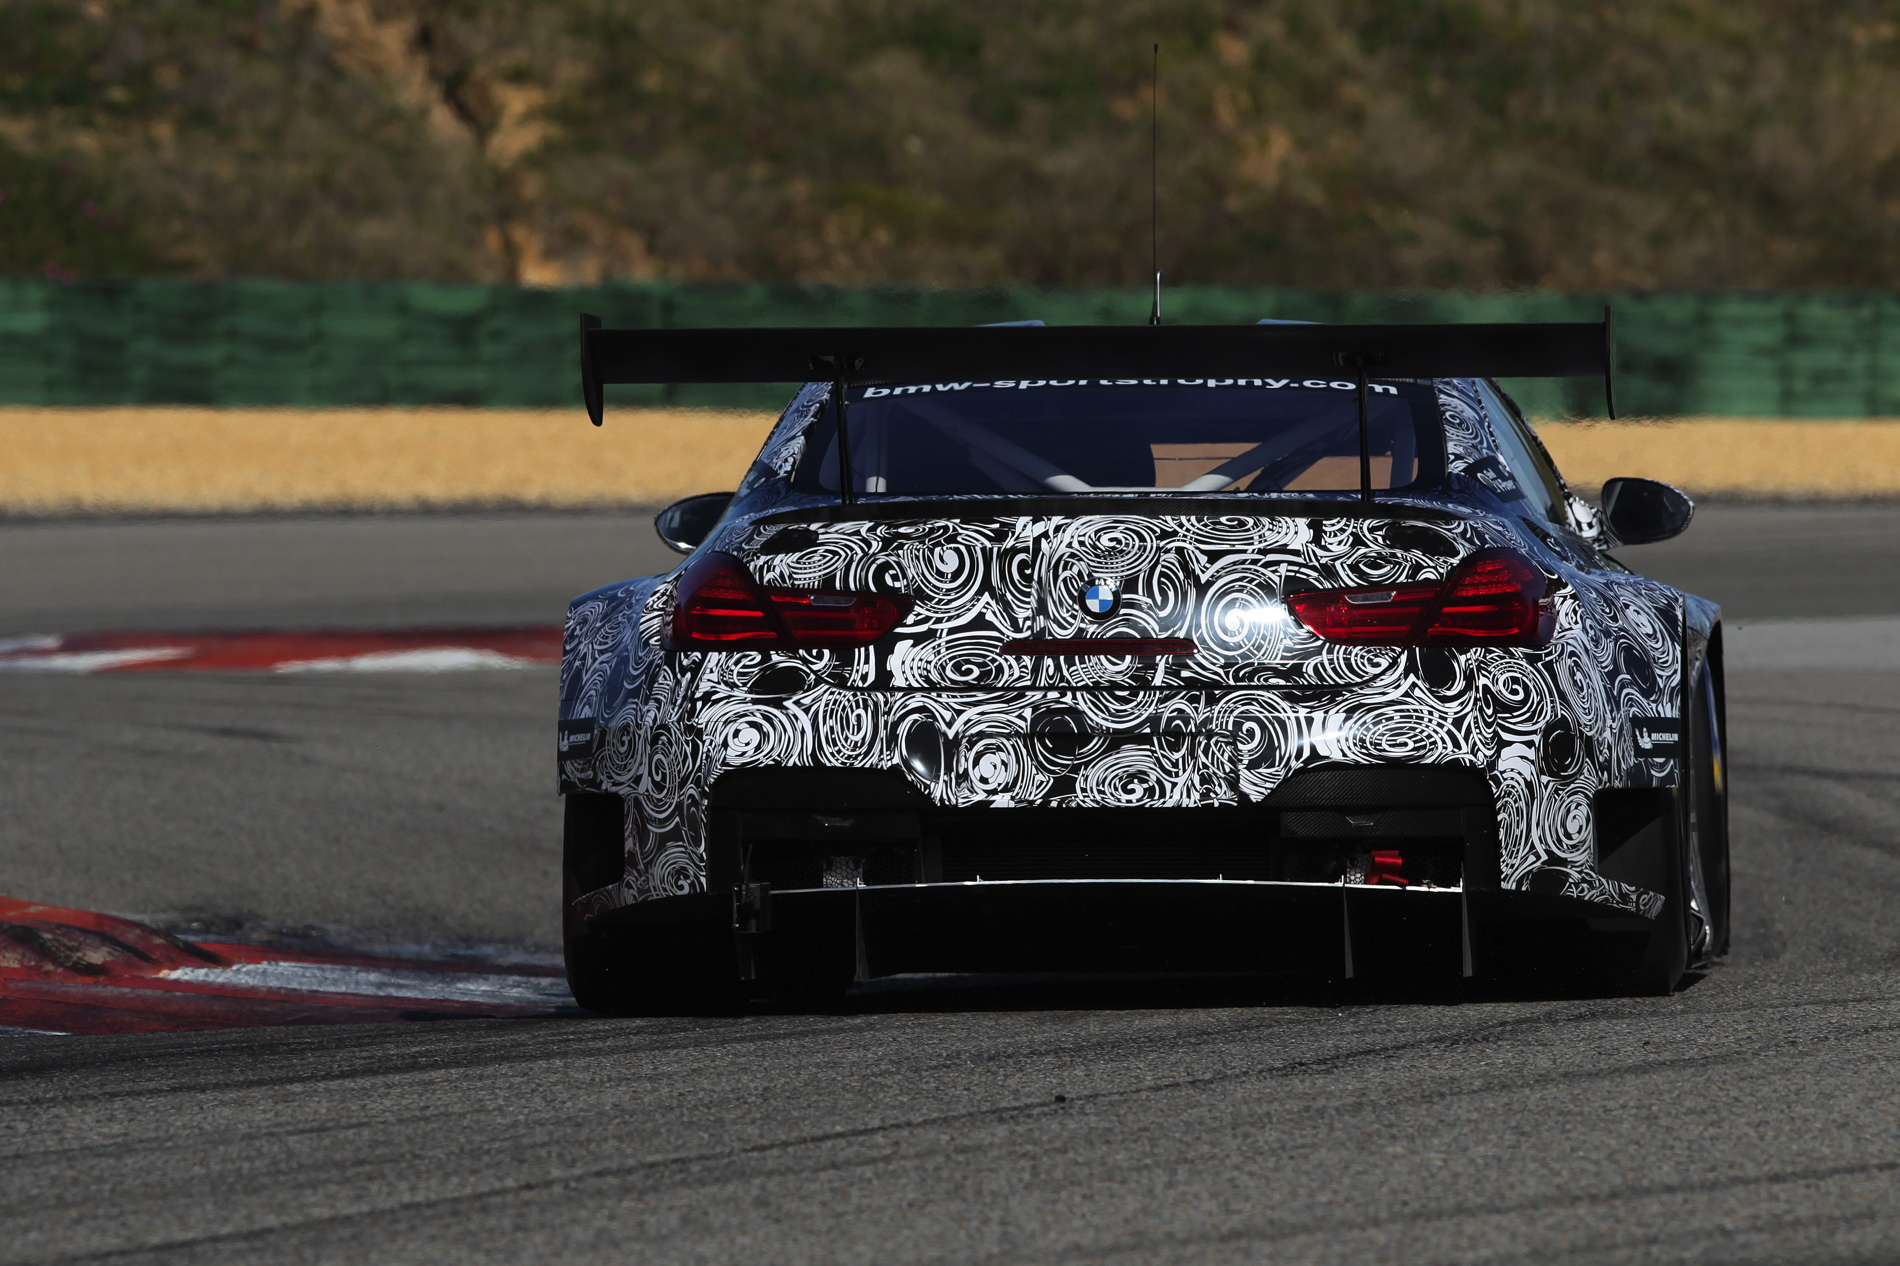 BMW M6 GT3 to debut at Frankfurt Motor Show price at 379 000 euros